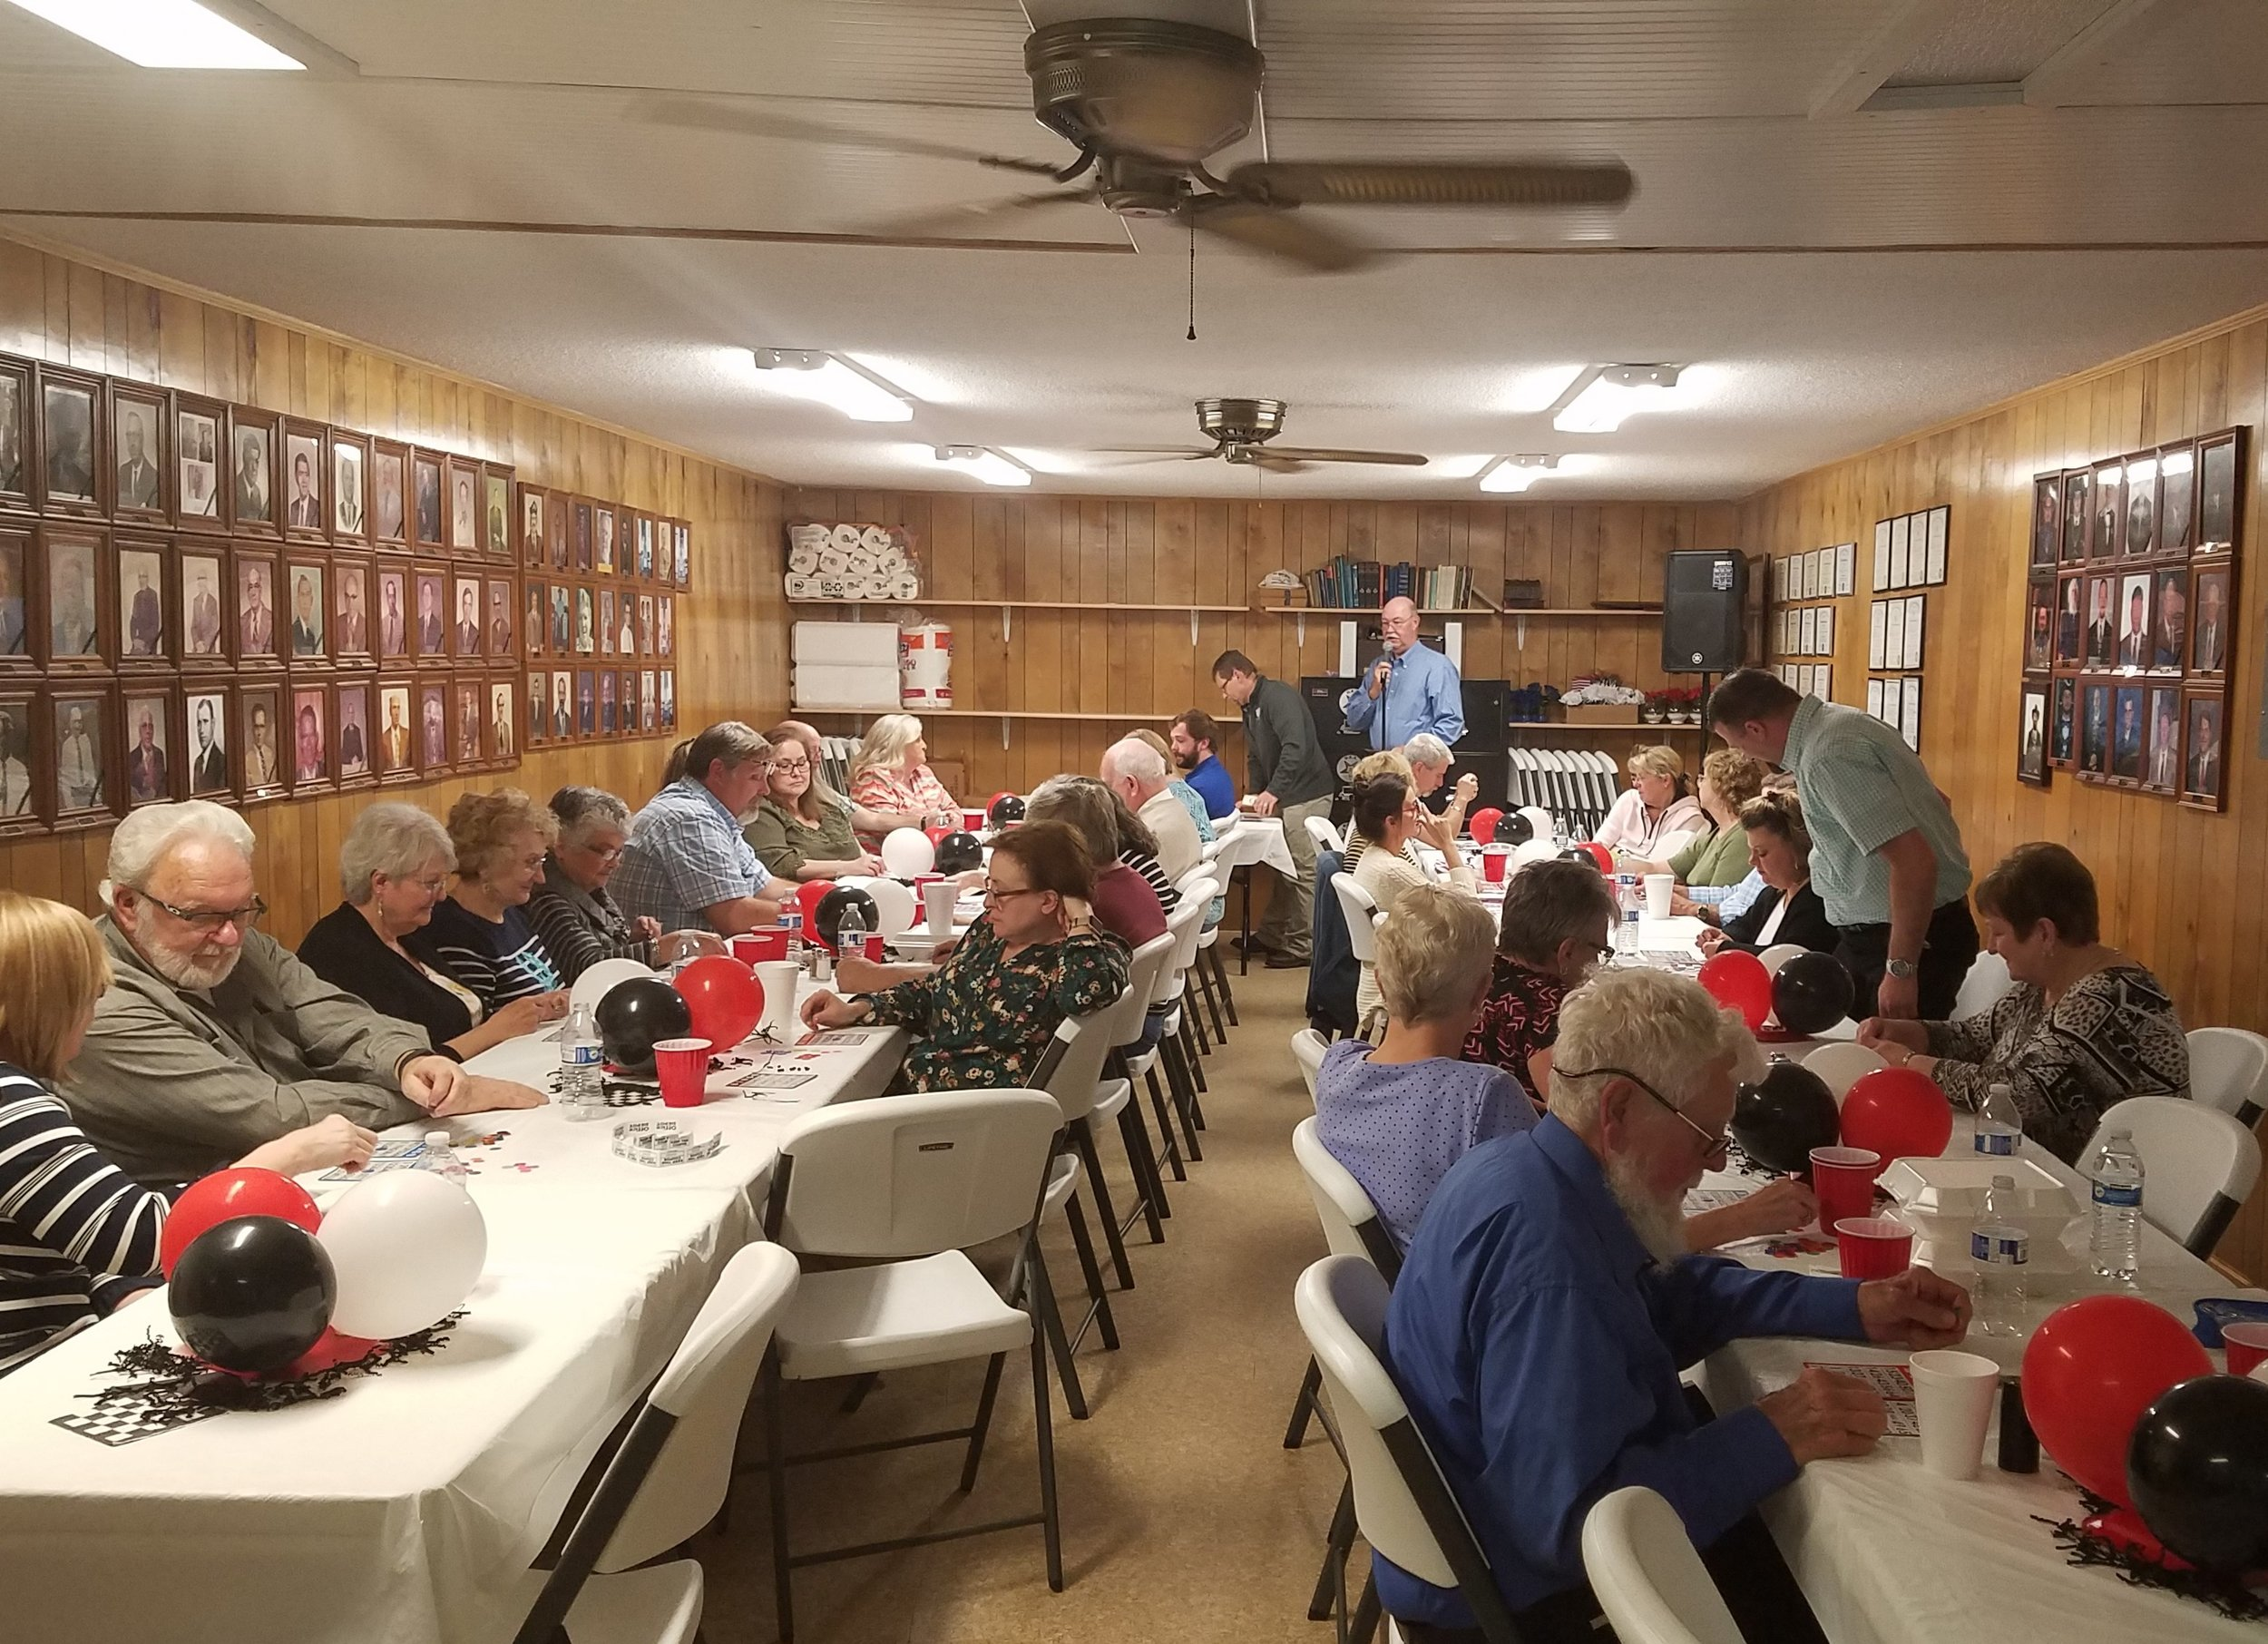 Attendees of the pot luck dinner enjoying a night of bingo!